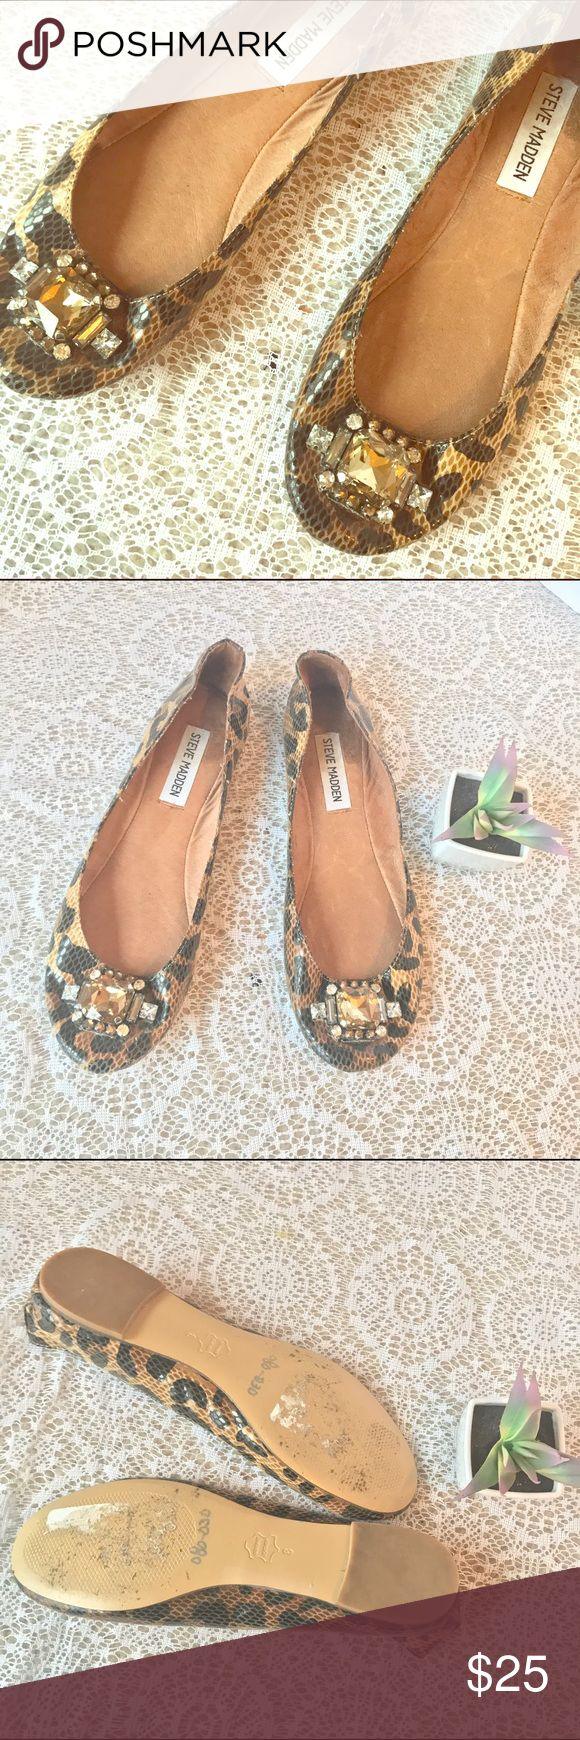 """Steve Madden Leopard Print Bejeweled Ballet Flats Steve Madden Leopard Print Bejeweled Ballet Flats """"Kobbe"""", Size 8.  Great condition, no flaws, only worn once or twice. Genuine leather sole and outsole on trend funky oversize gemstones. Steve Madden Shoes Flats & Loafers"""